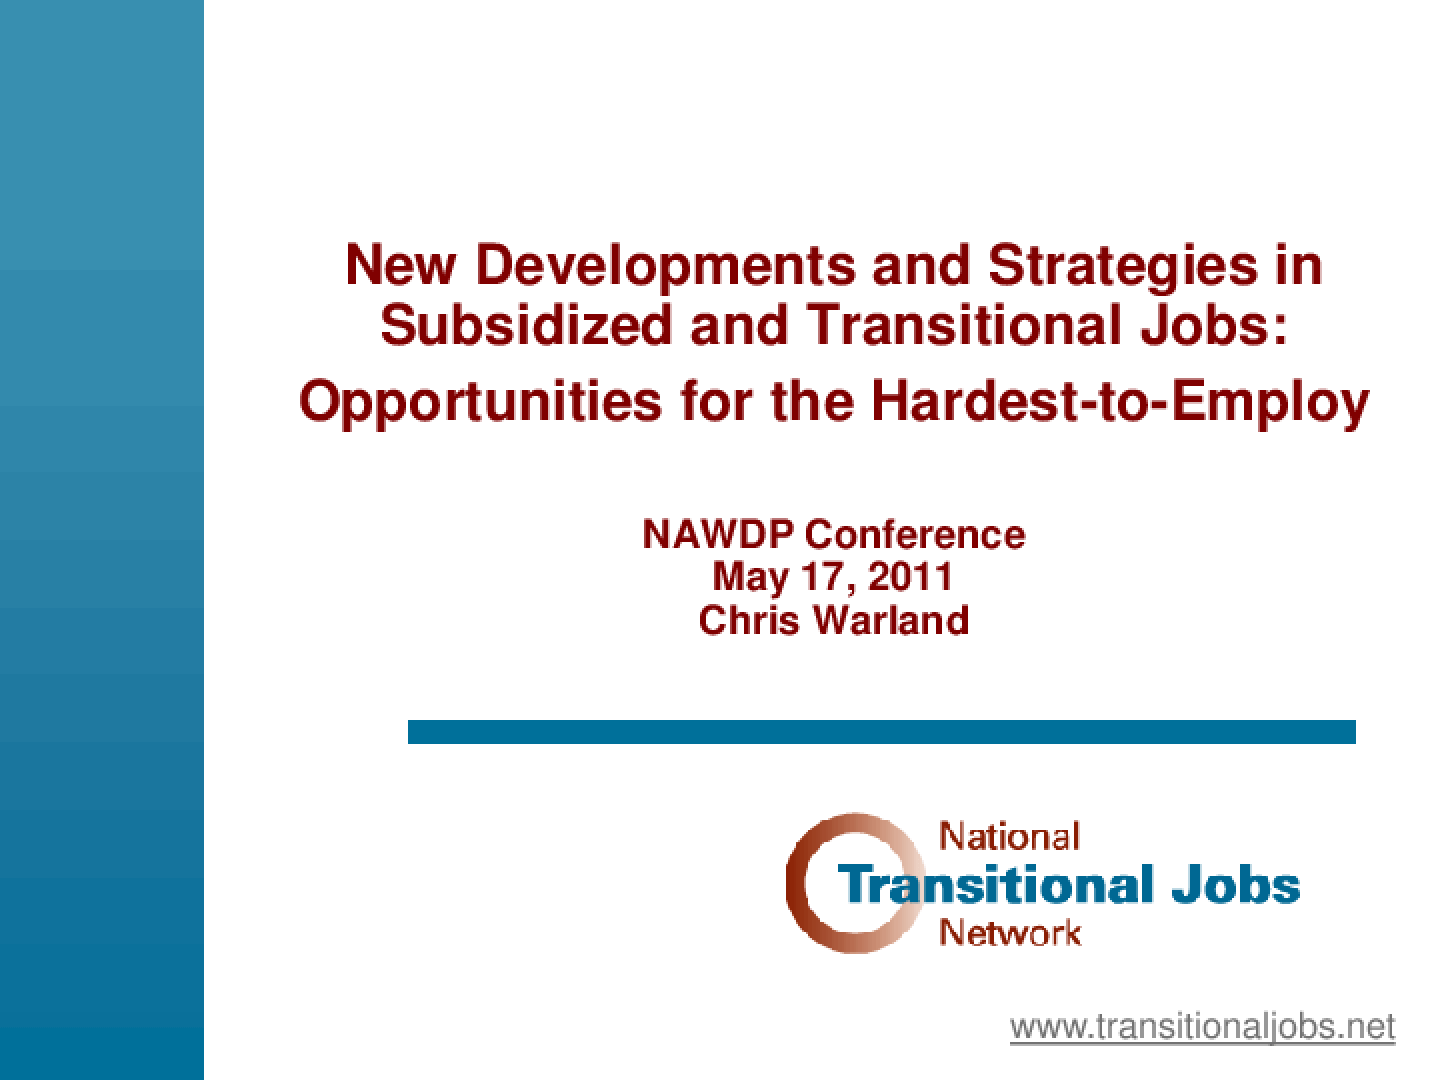 New Developments and Strategies in Subsidized and Transitional Jobs: Opportunities for the Hardest-to-Employ